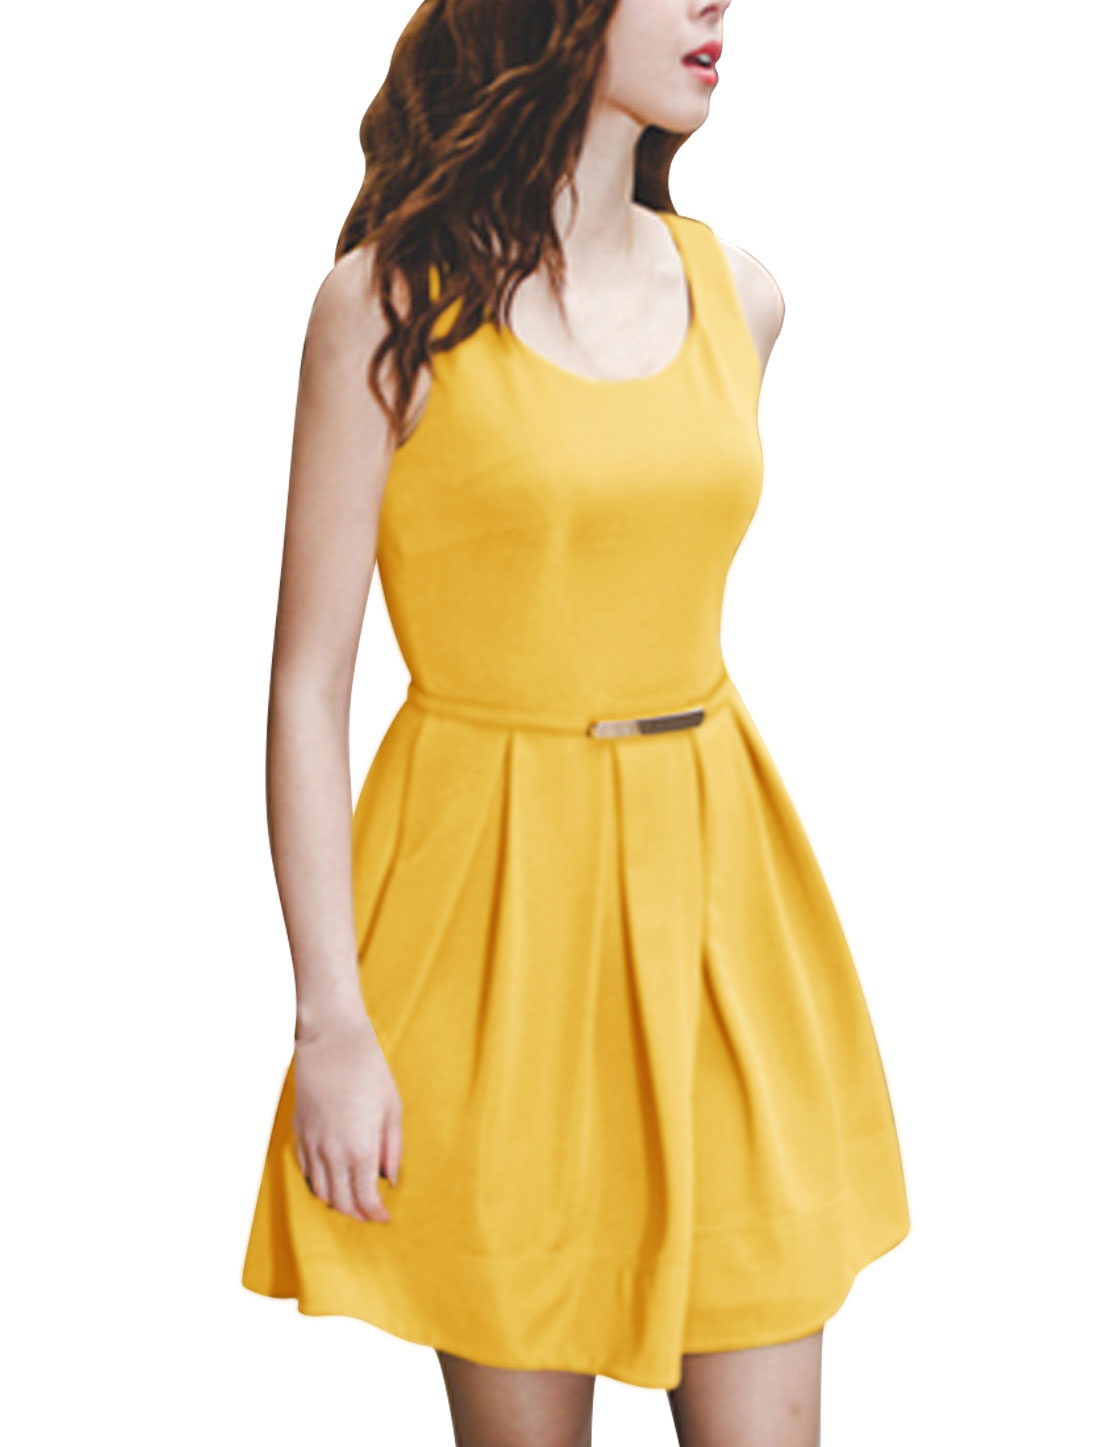 Women Yellow Sleeveless Concealed Zip Closure Back Cinched Waist Dress M w Belt